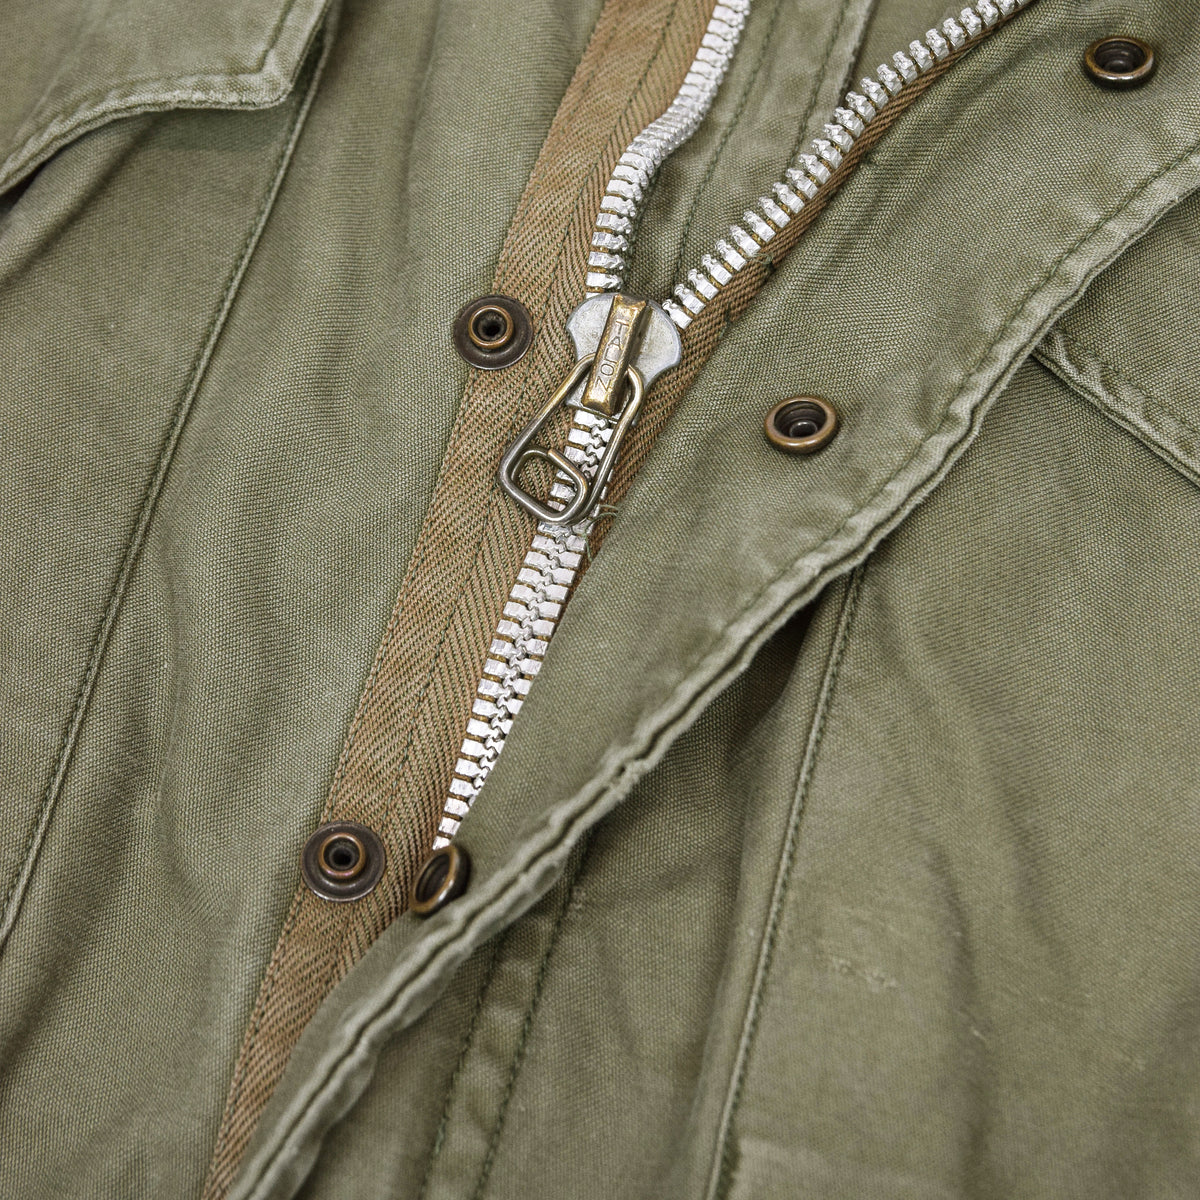 Vintage 50s M-1951 Korean War US Army Field Jacket OG-107 Olive Green M zip